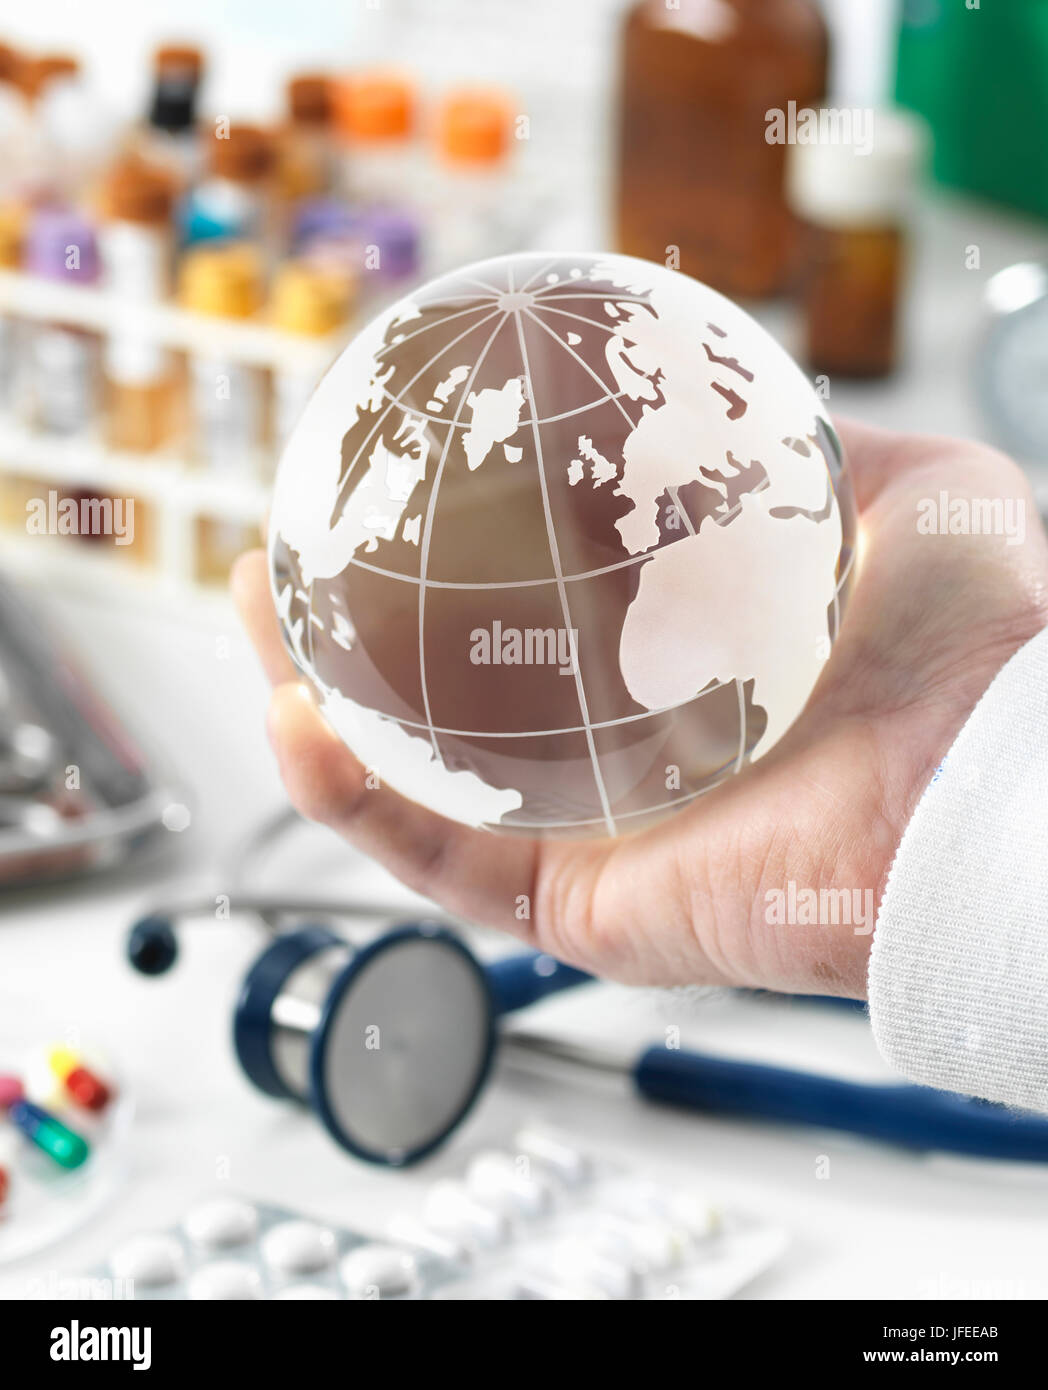 MODEL RELEASED. Global healthcare, conceptual image. - Stock Image